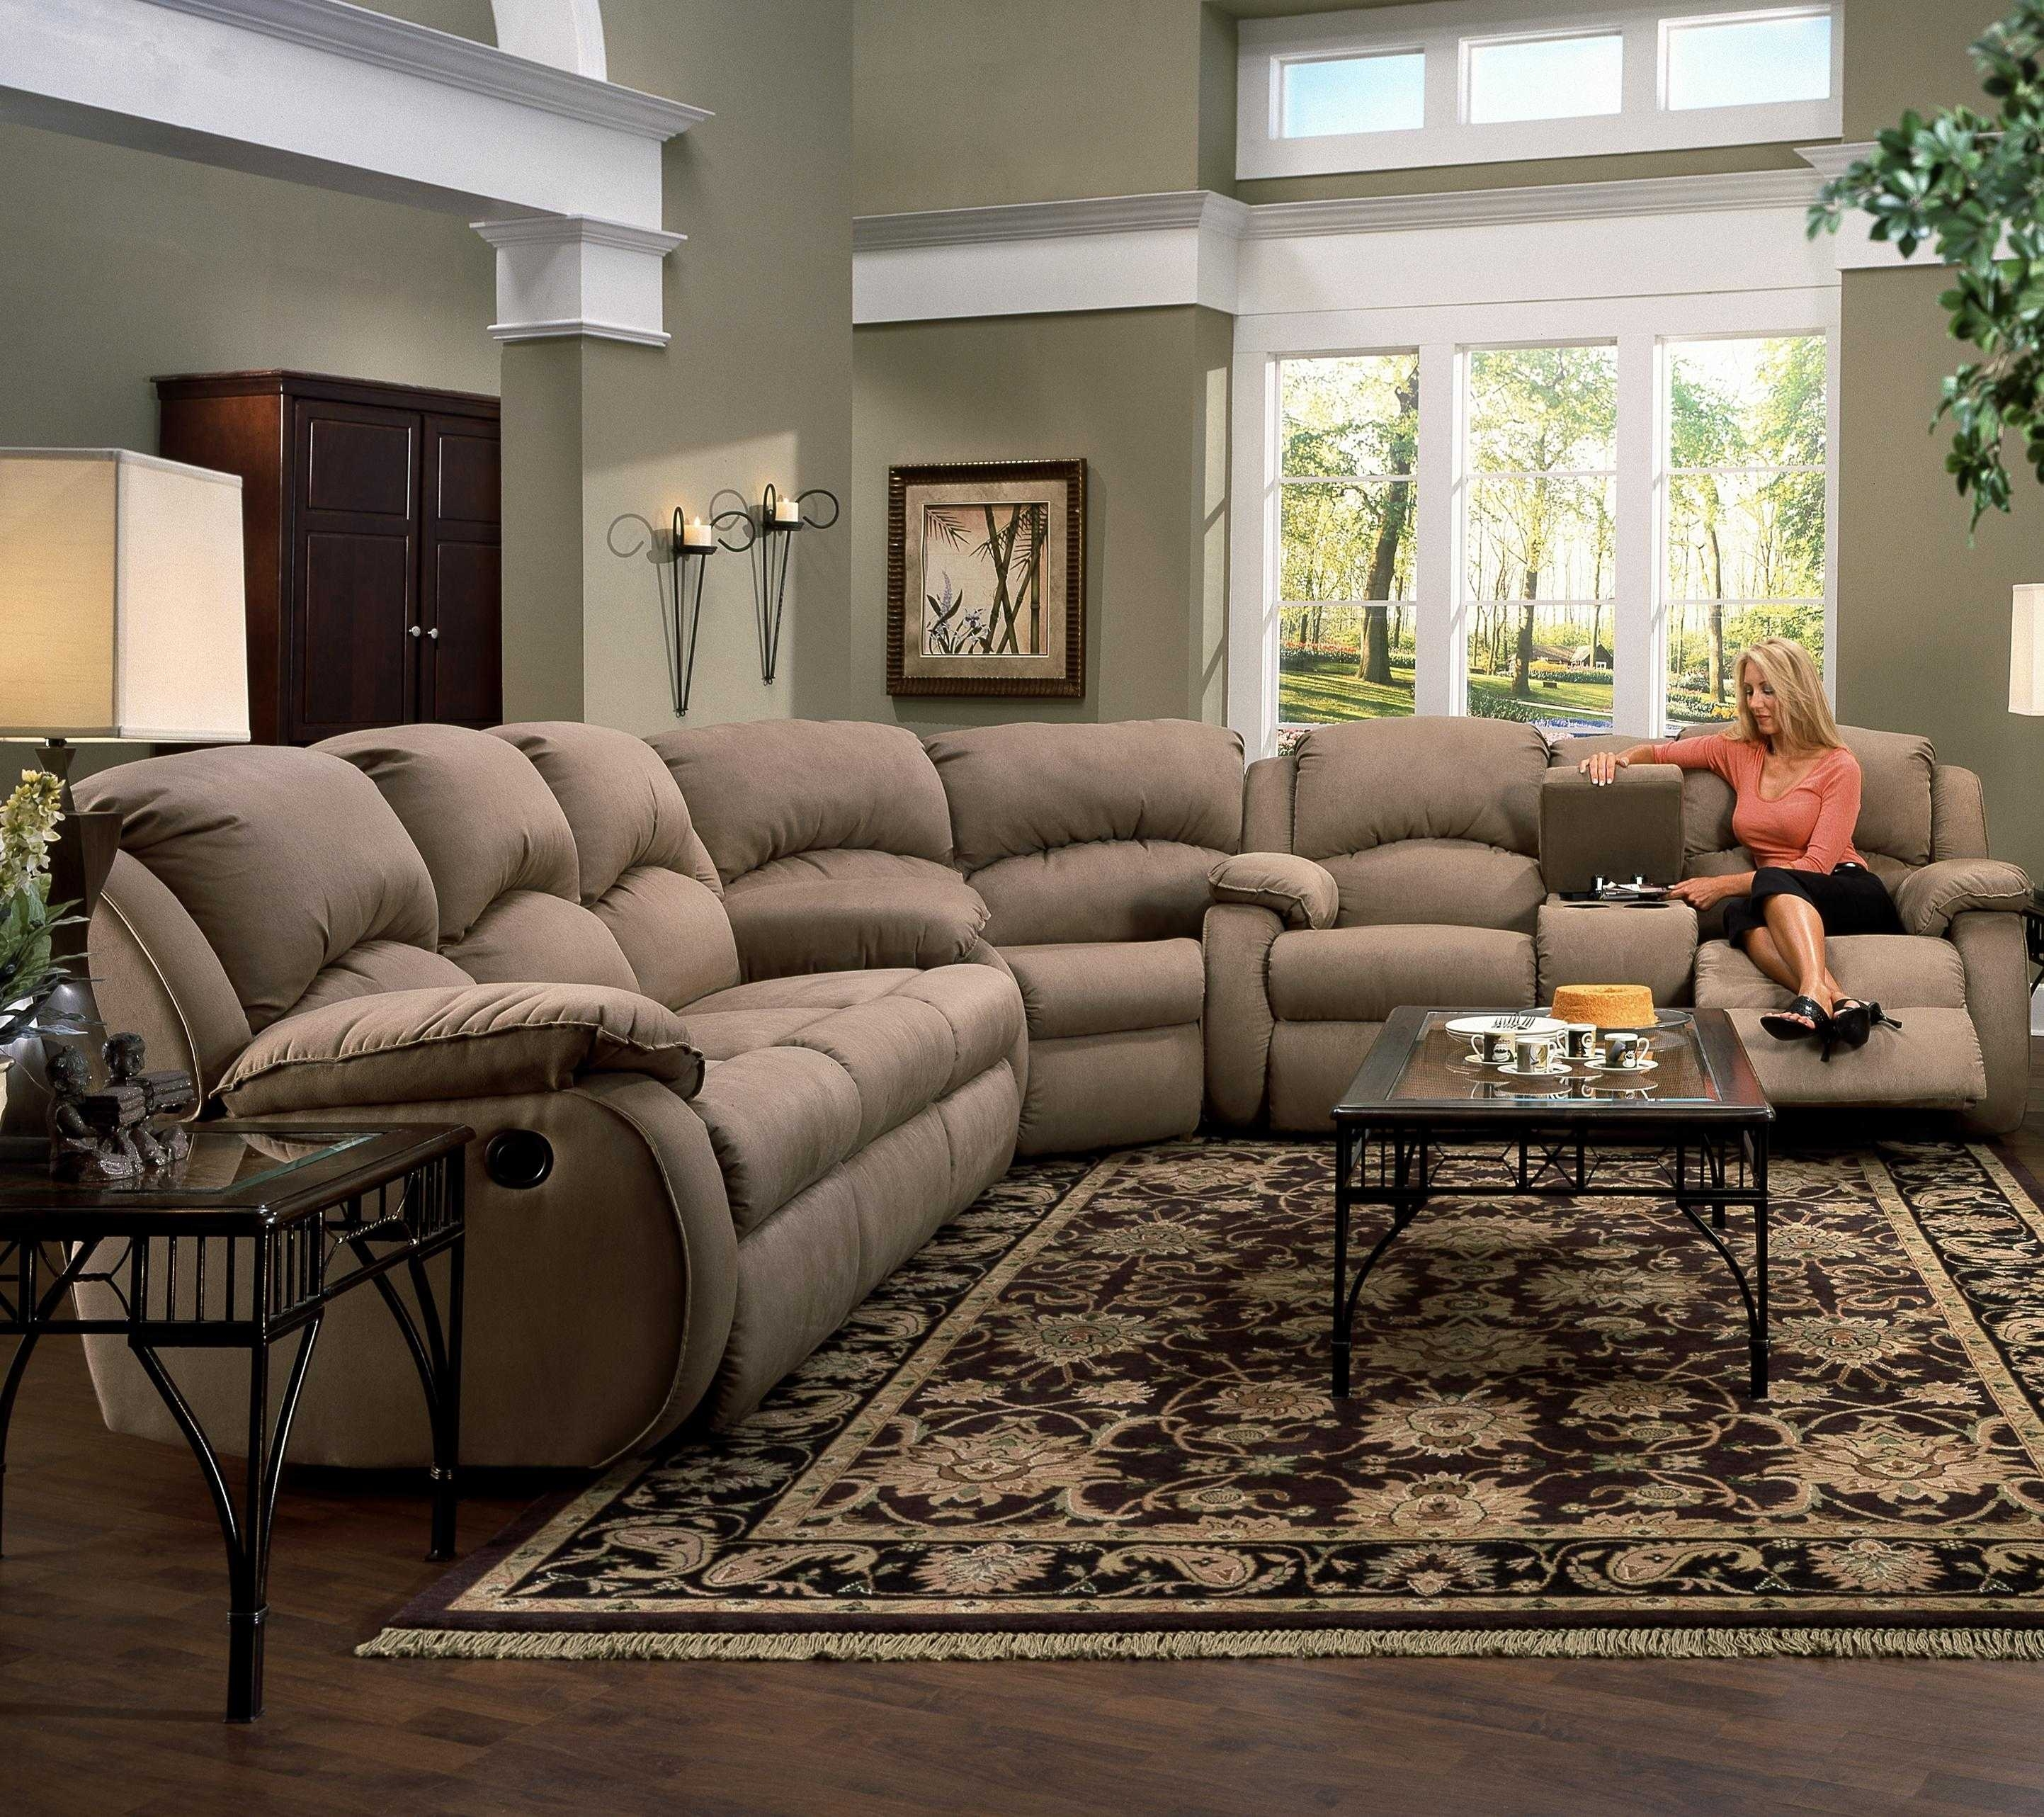 Sectional Sofas With Recliners And Cup Holders Sofa Set Clearance Regarding Sectional Sofas With Cup Holders (Image 9 of 10)